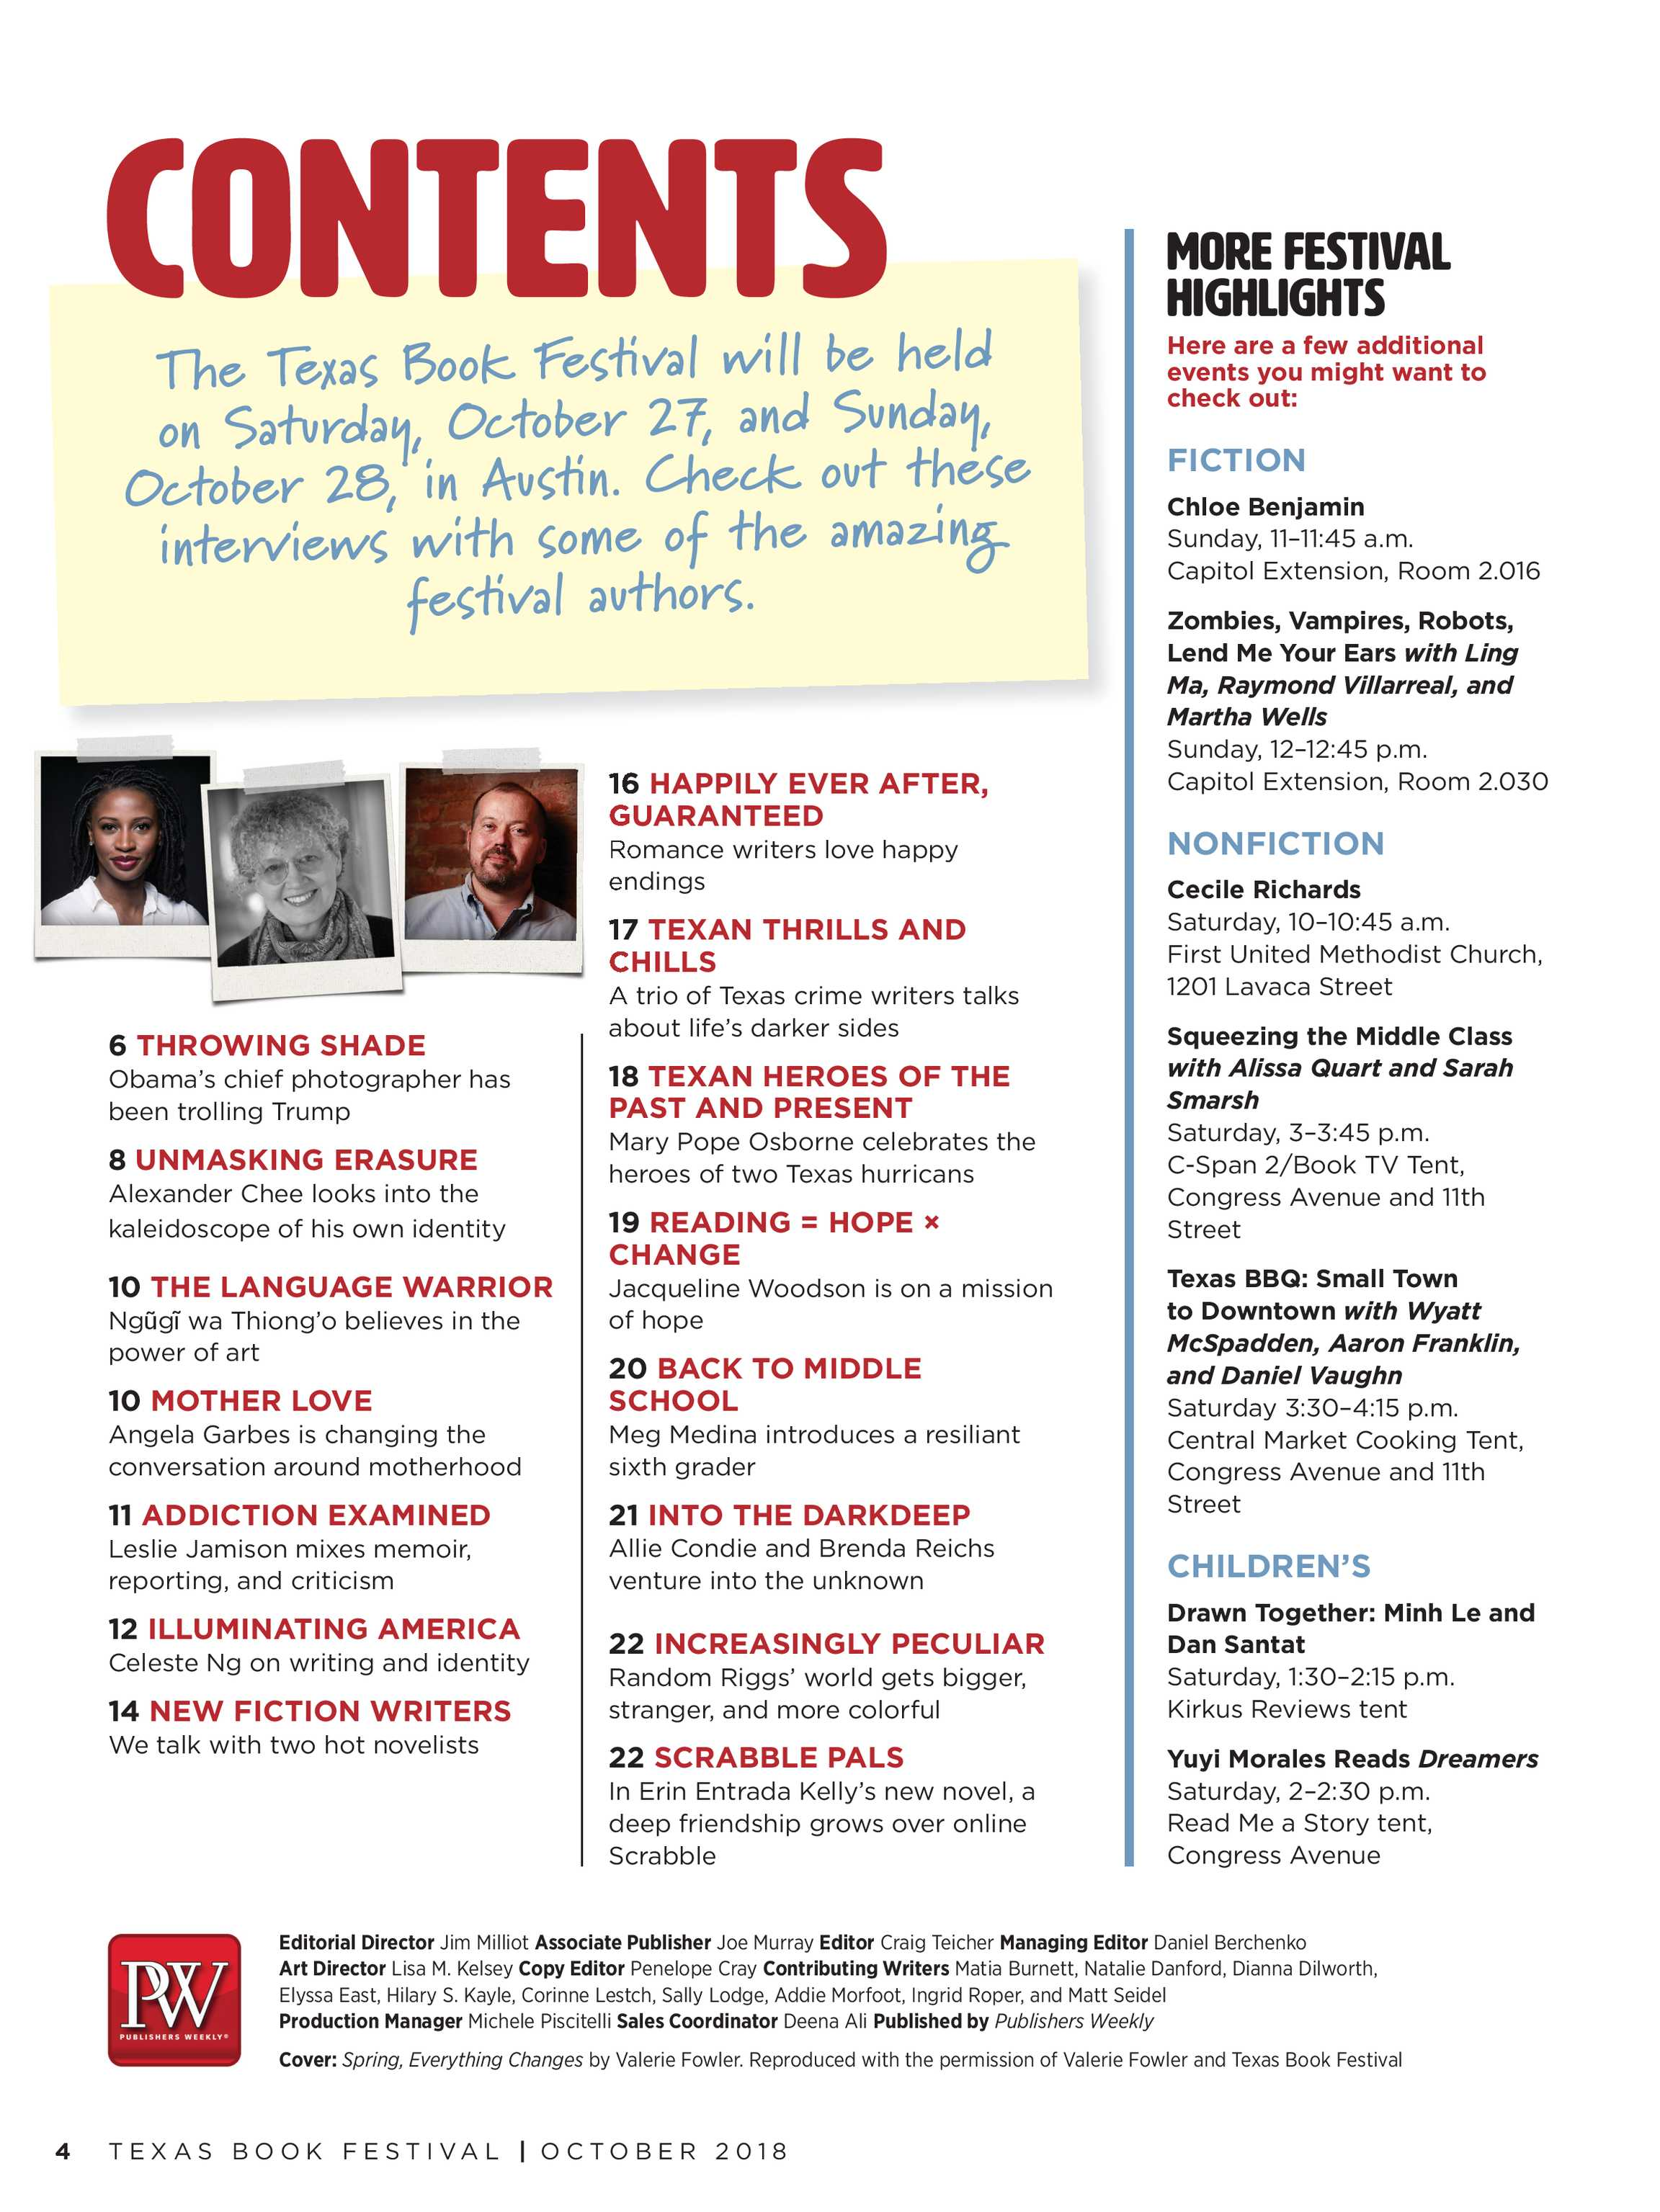 Publishers Weekly - Texas Supplement 2018 - page 4